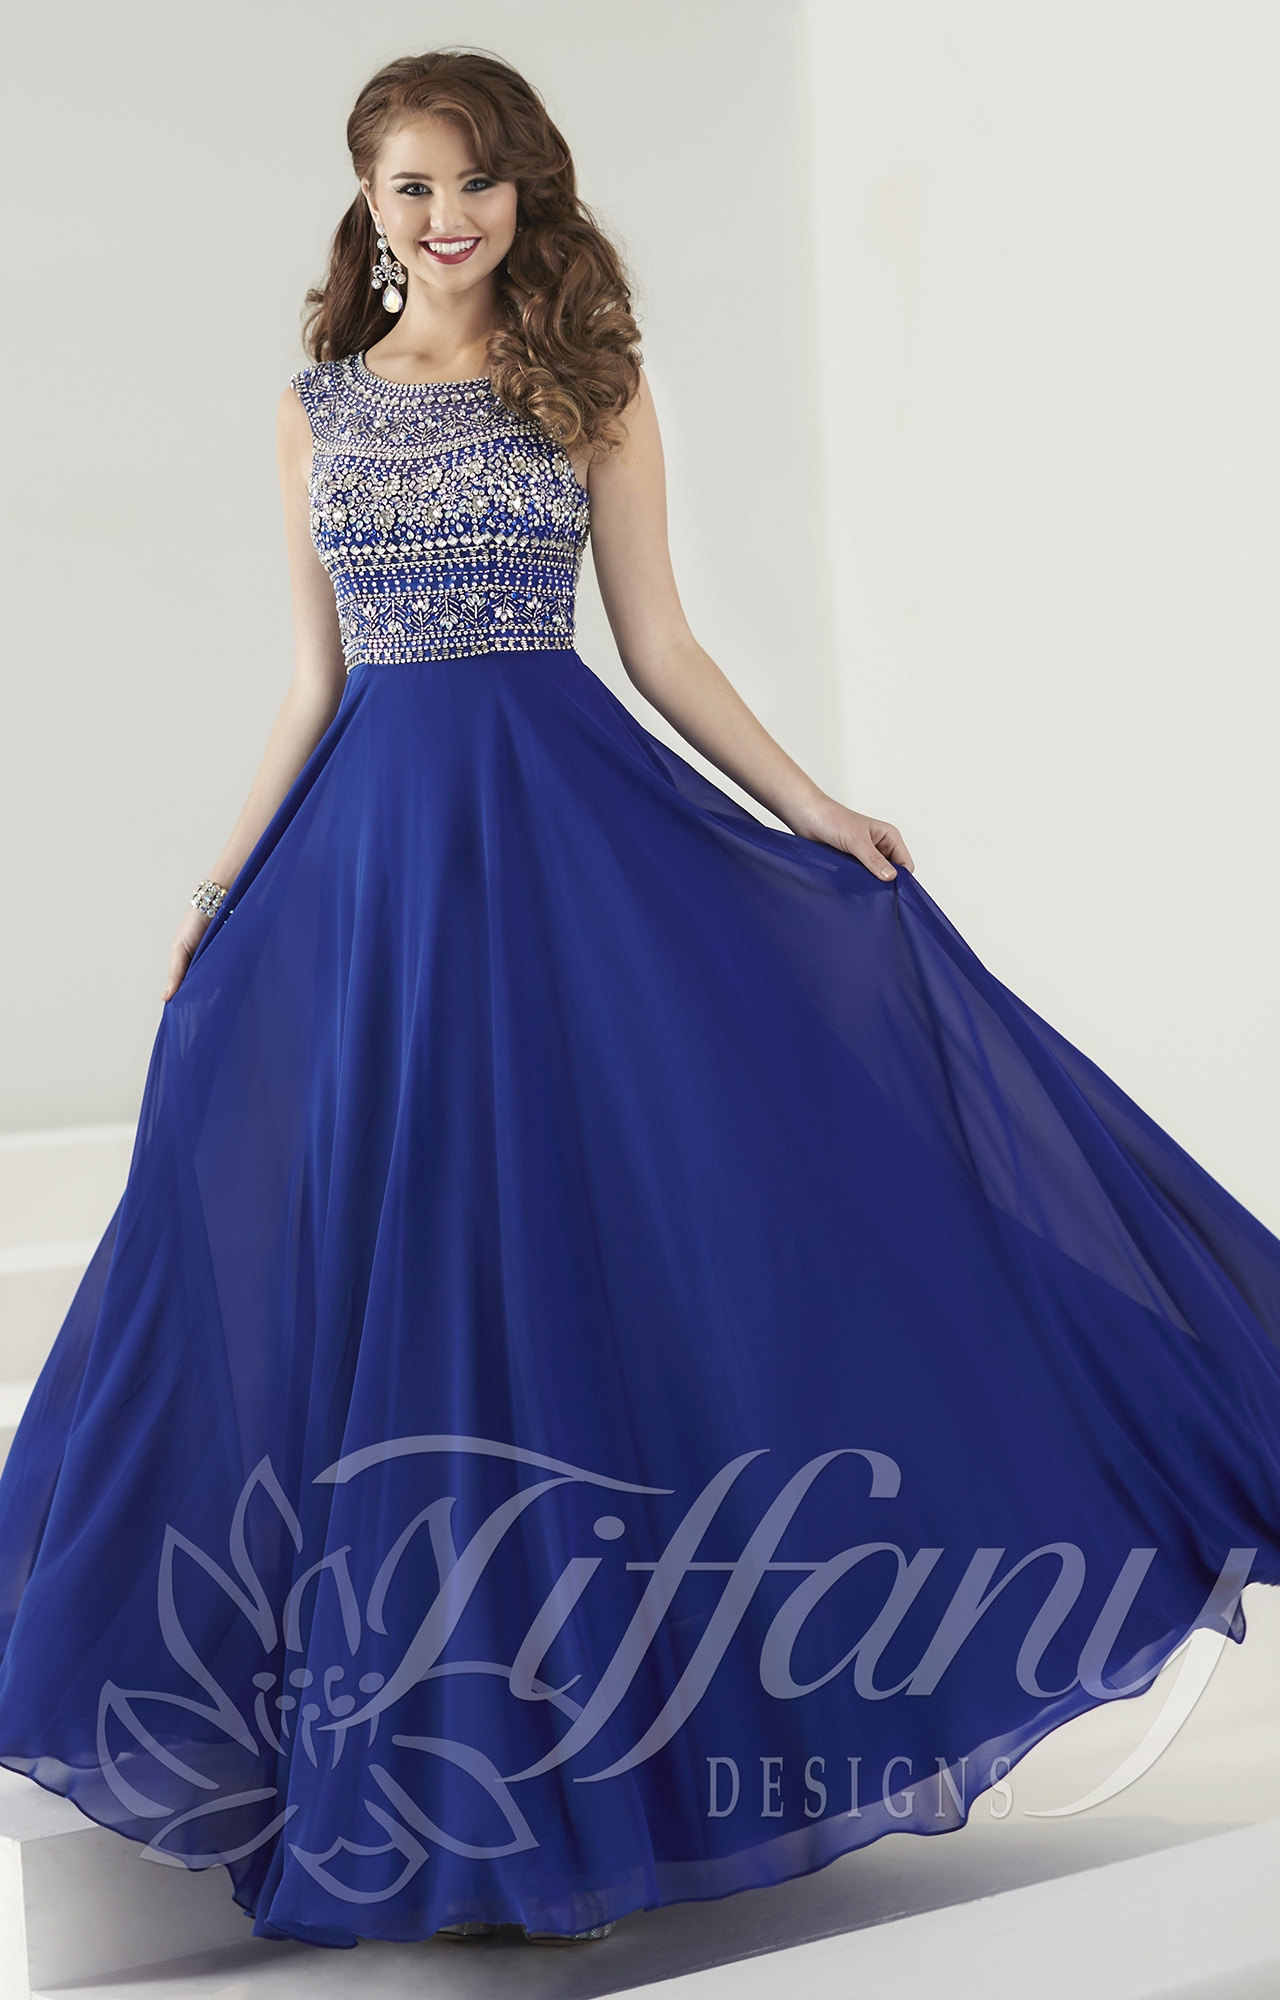 Tiffany Designs 16184 Belle Of The Ball Gown Prom Dress